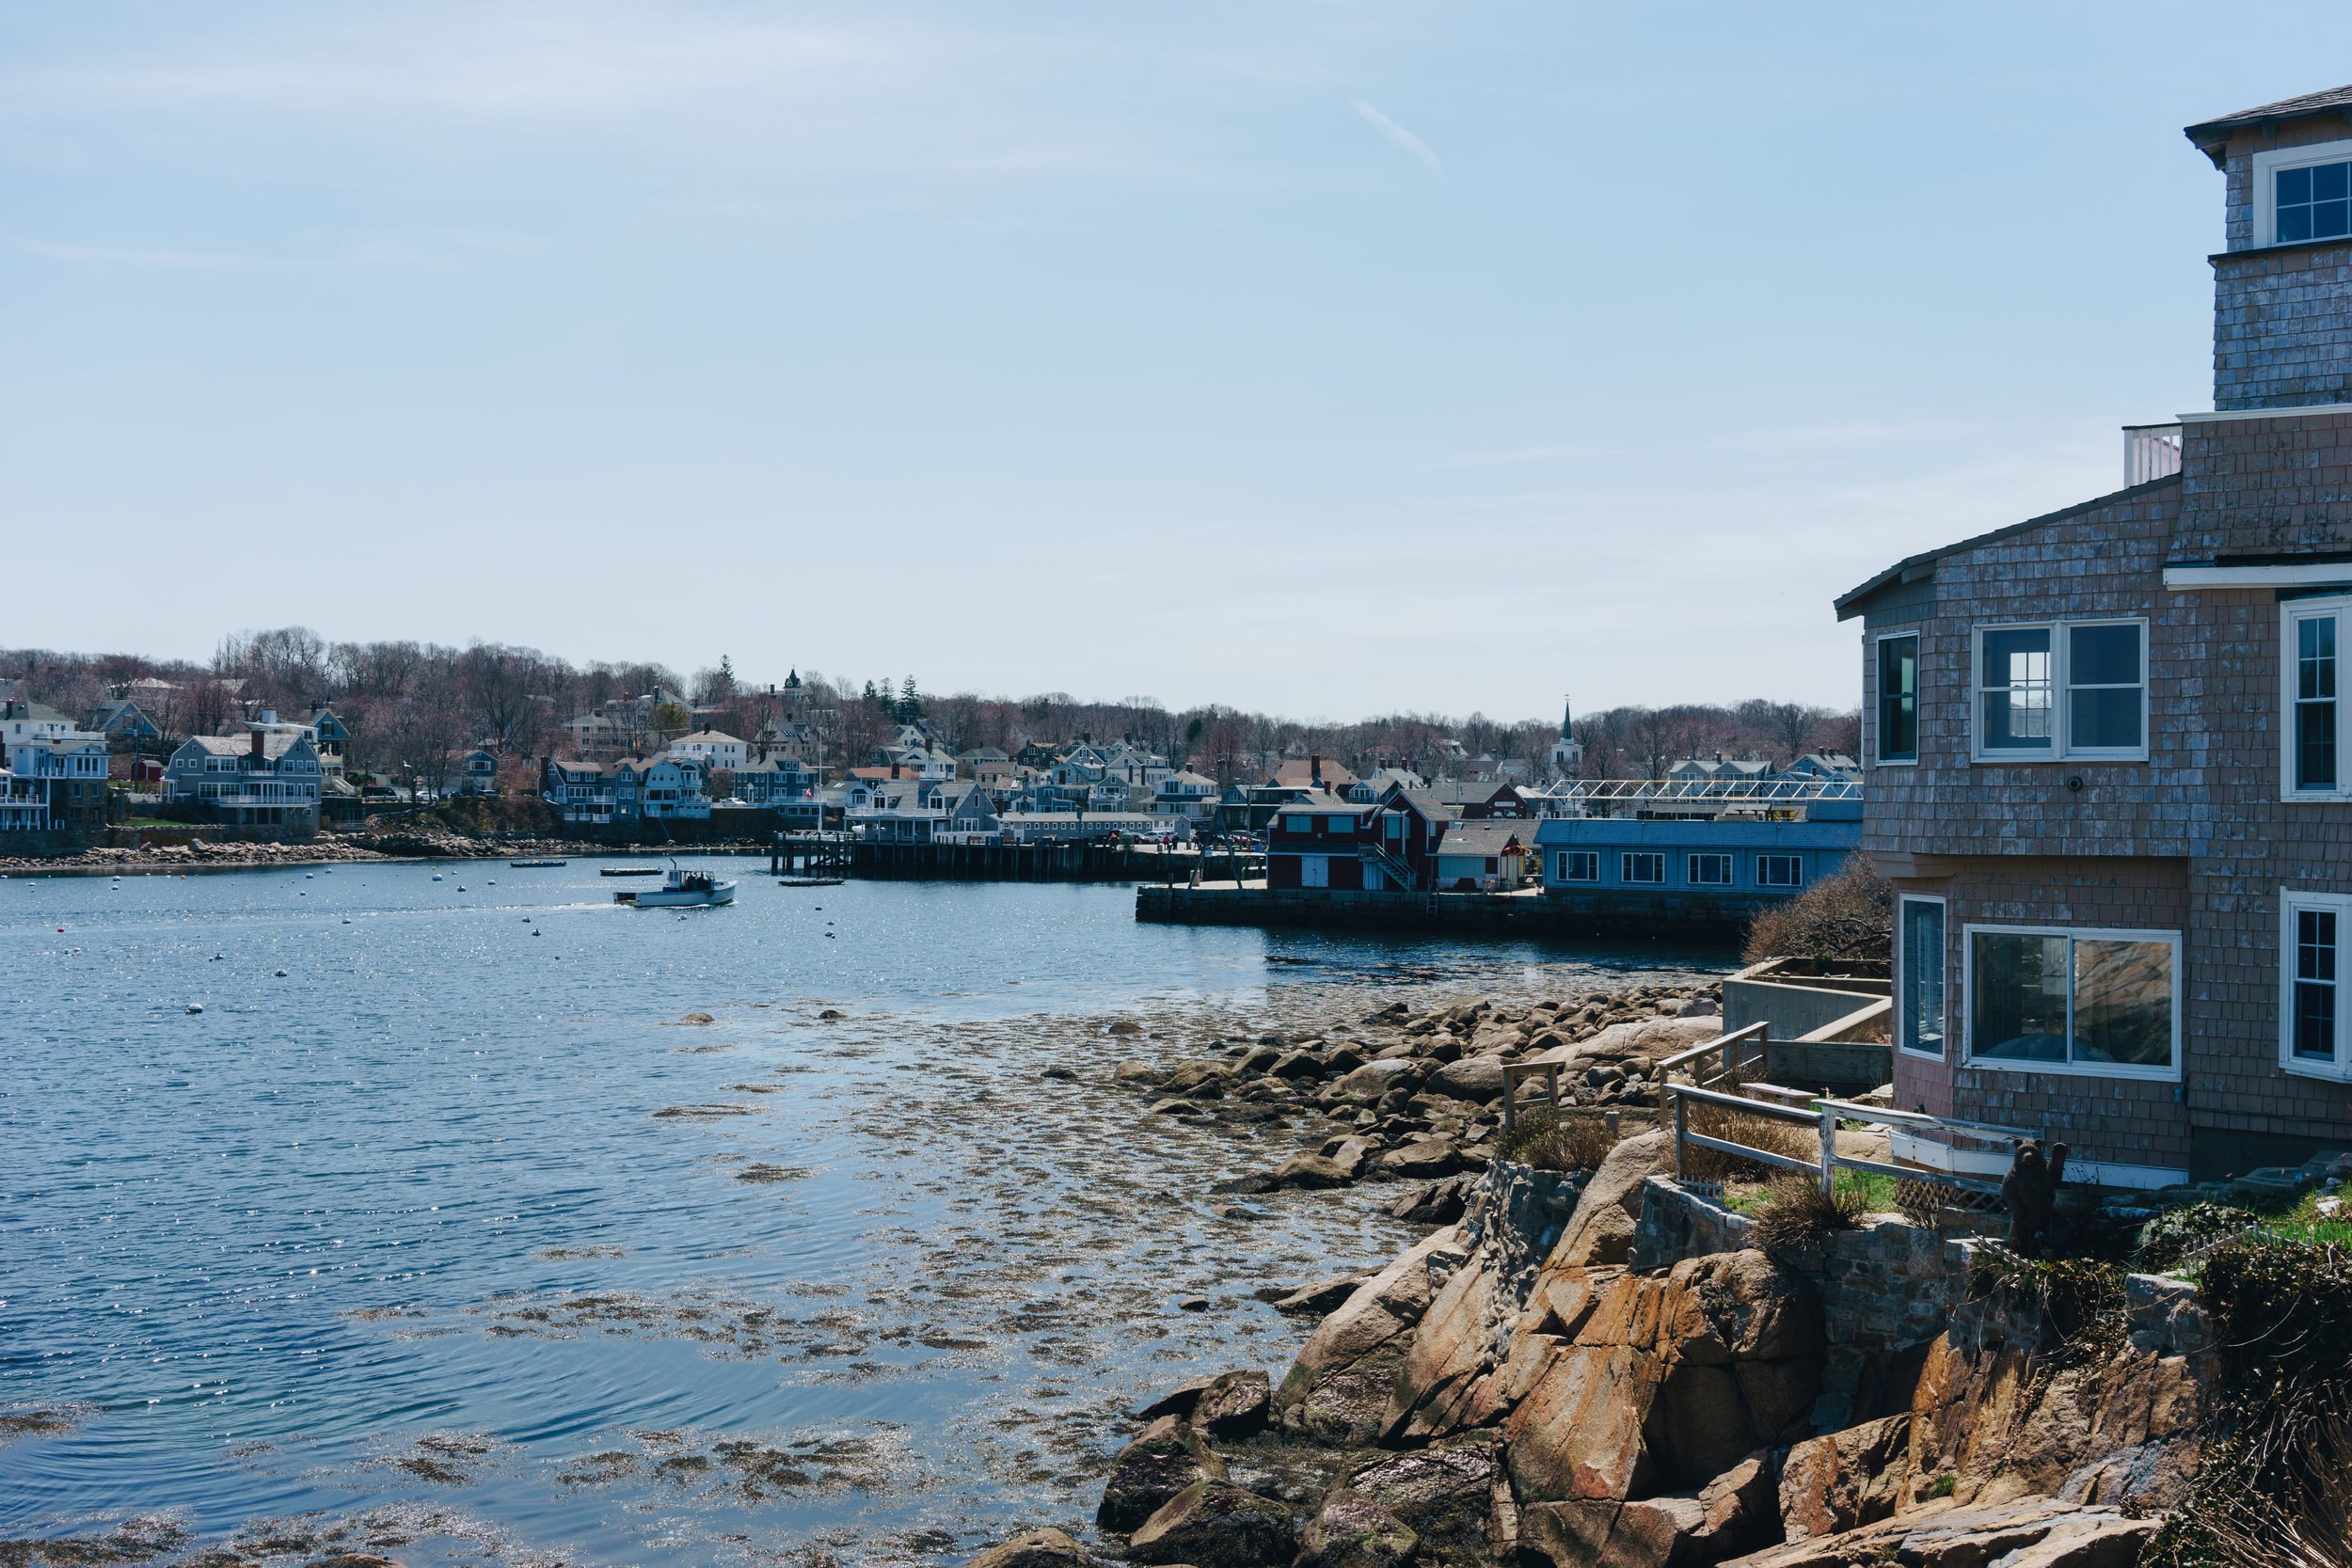 A very picturesque seaport town, much like what you'd see in movies.